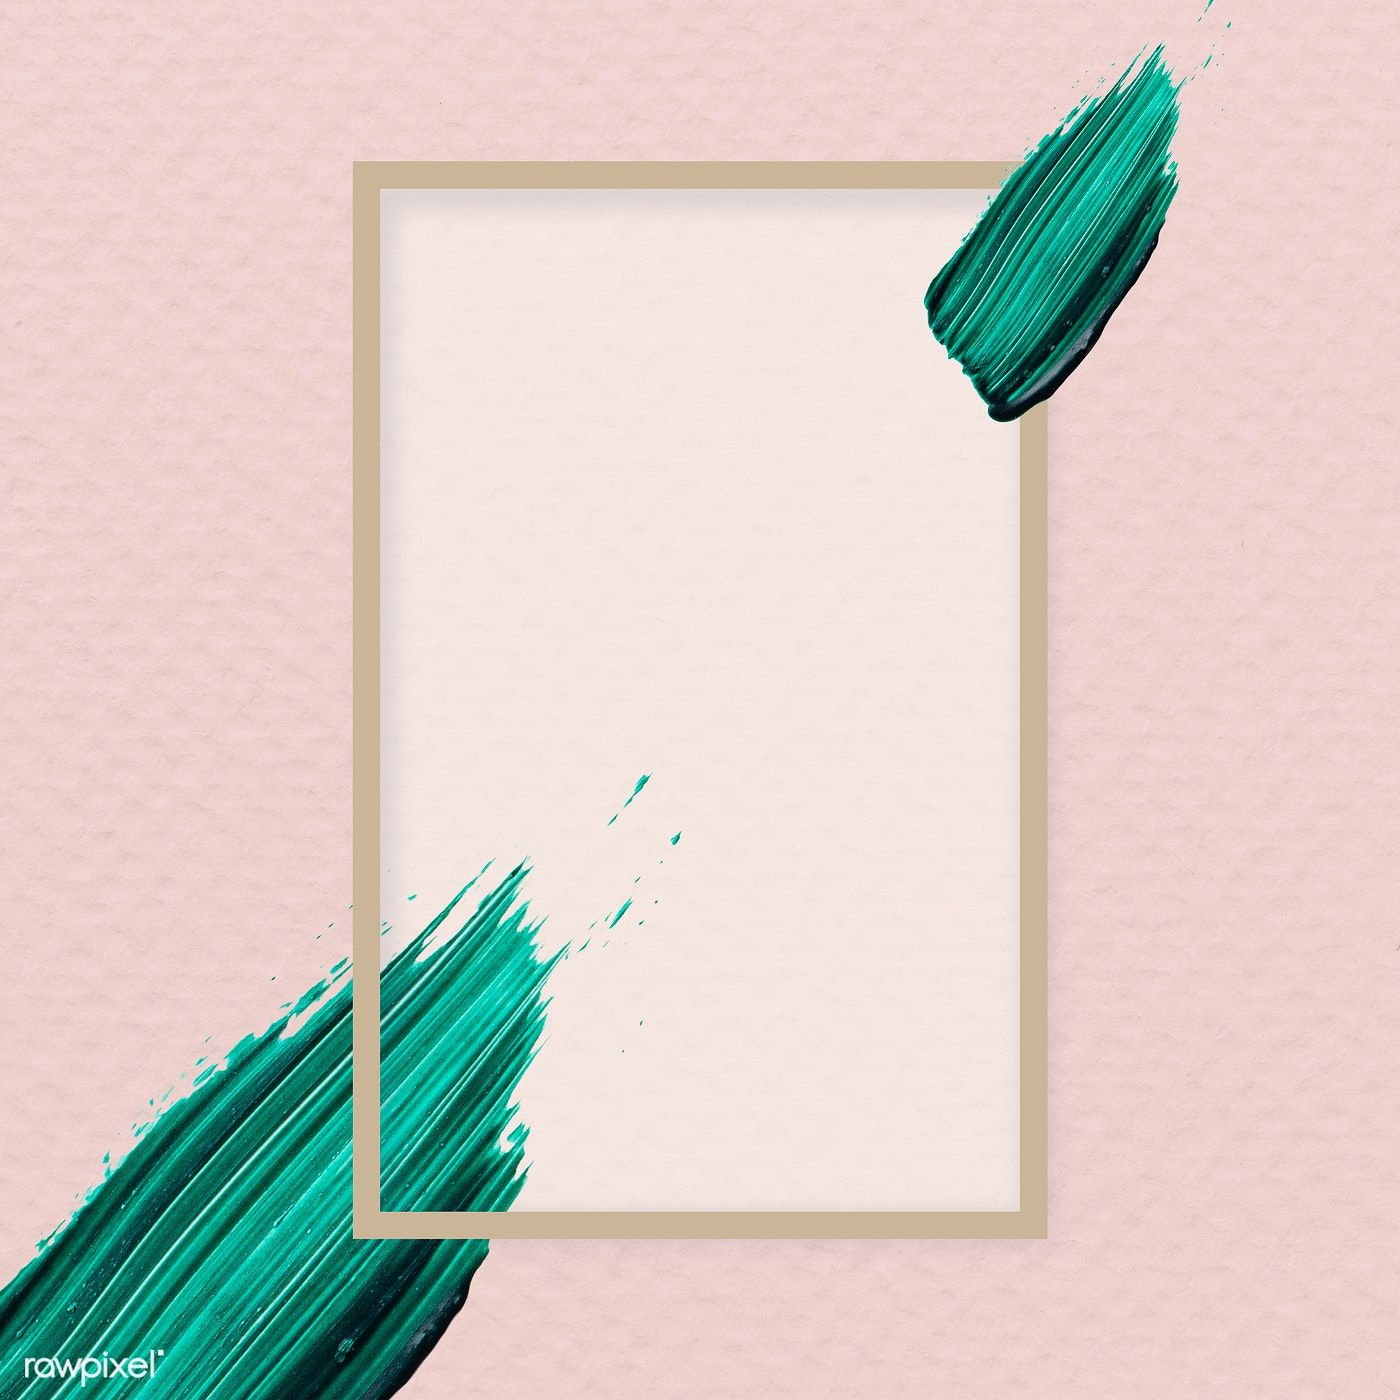 Green brush stroke on a frame vector free image by